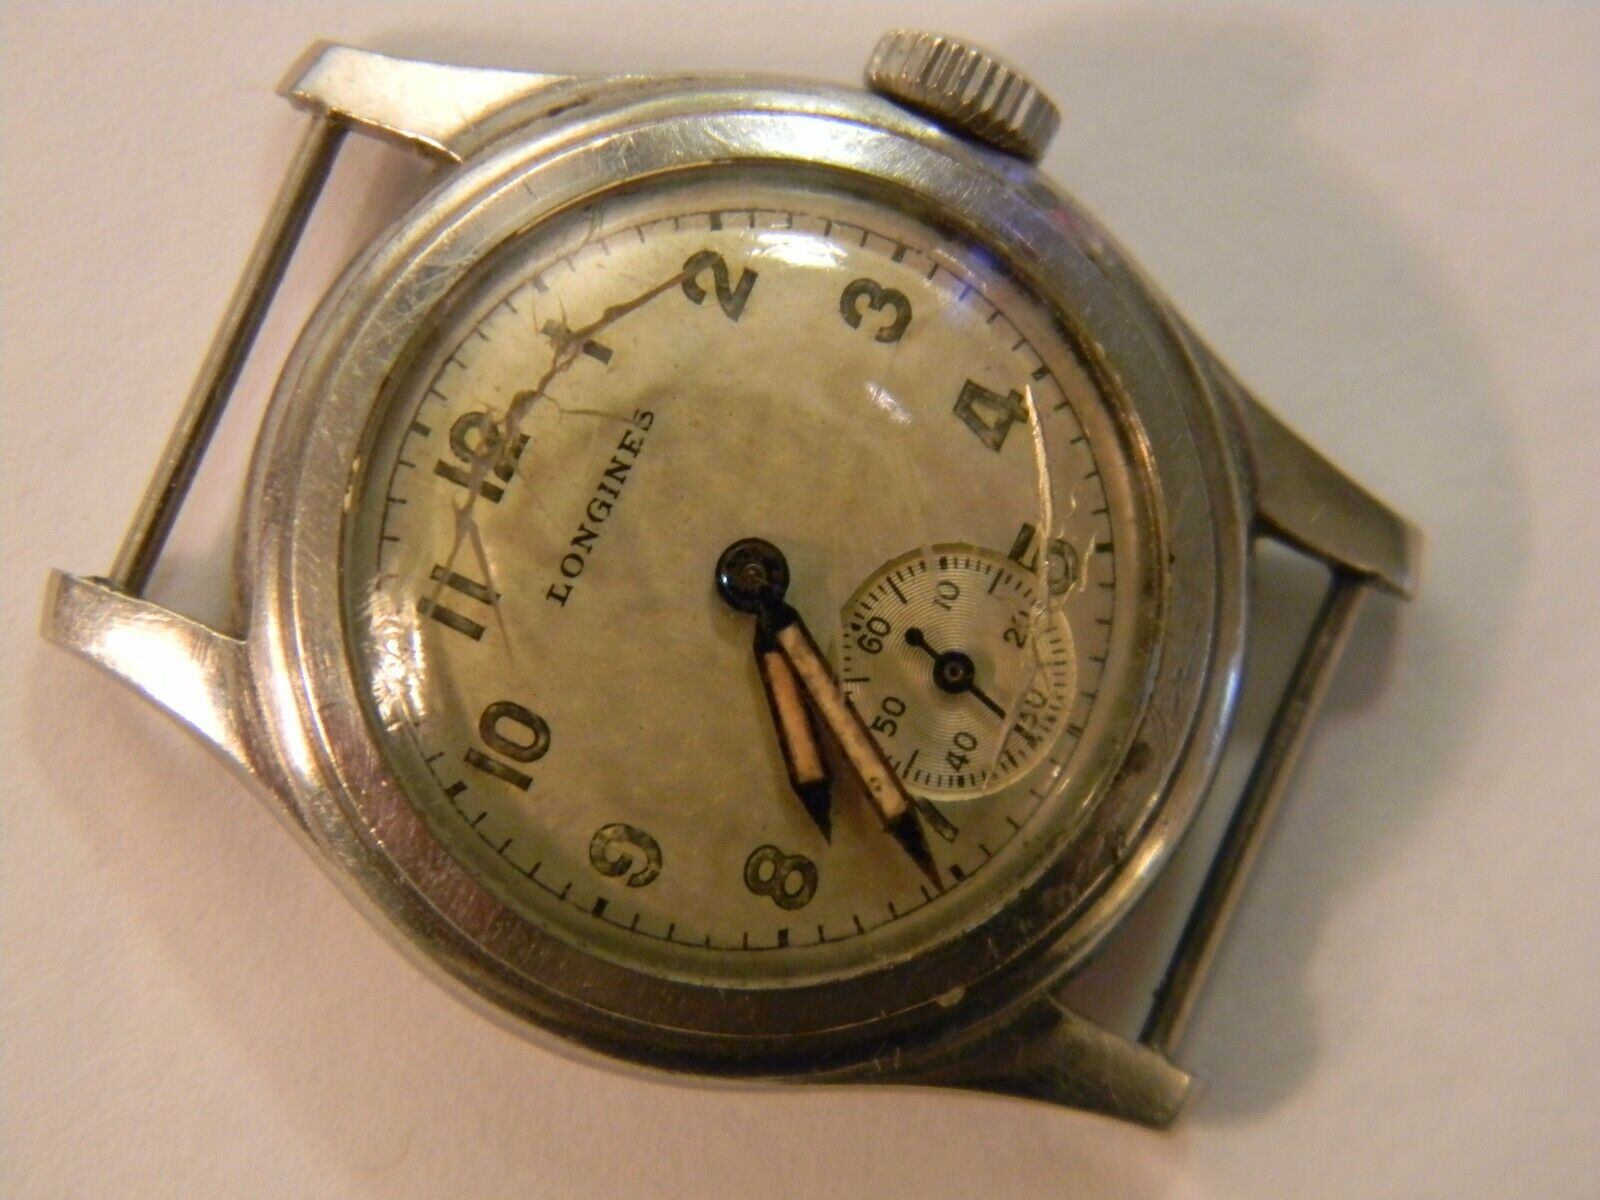 RARE VINTAGE 1944 WW2 LONGINES MILITARY LADIES STAINLESS STEEL WATCH - RUNS